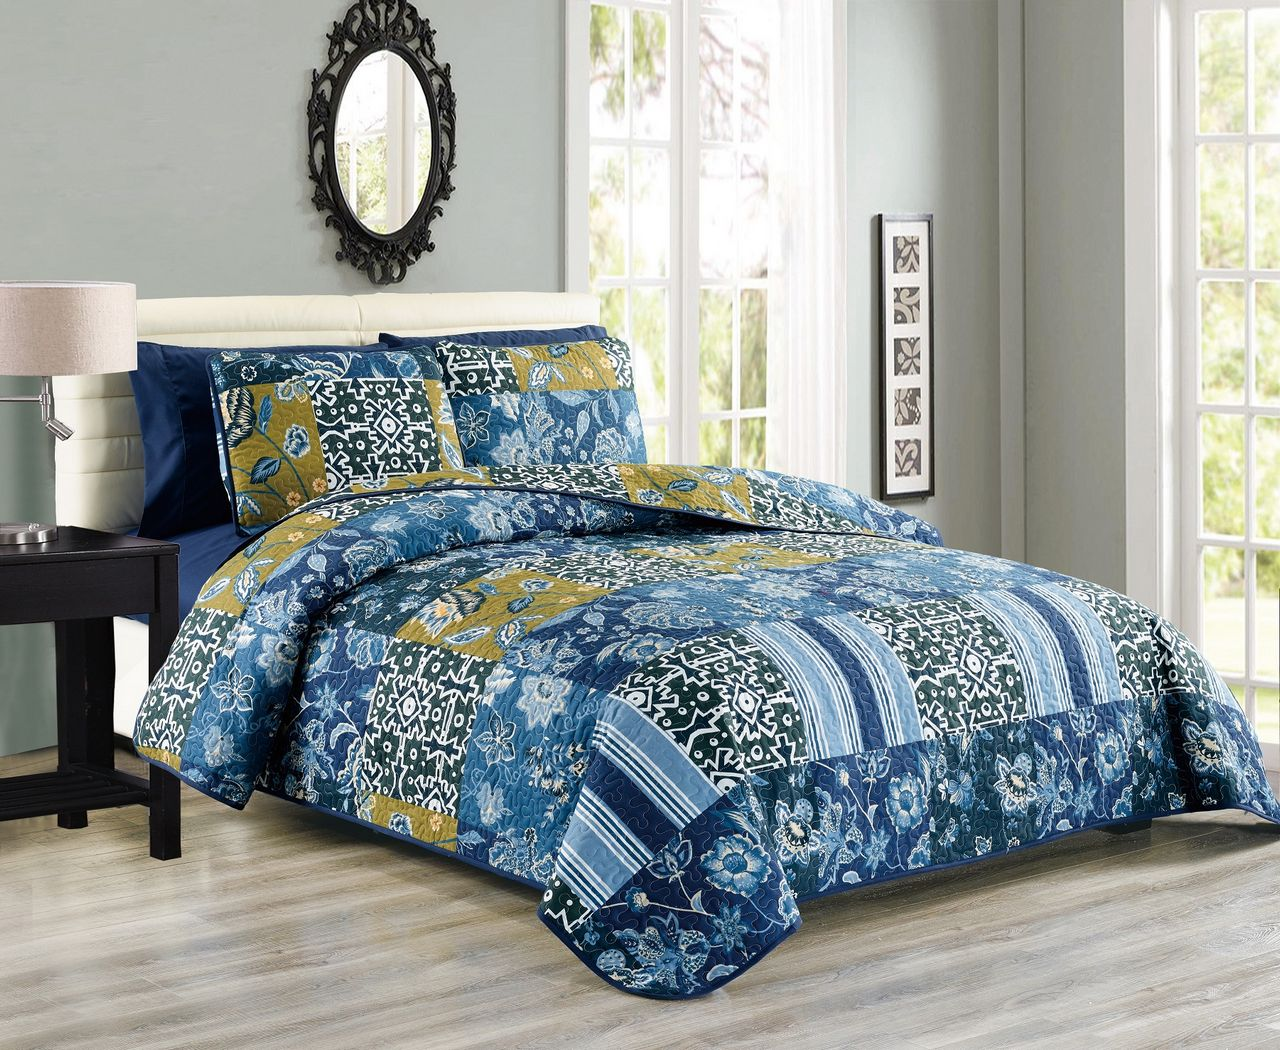 Click here to buy 6 Piece Floral Geometric Patchwork Reversible Bedspread Quilt with SHeet Set.